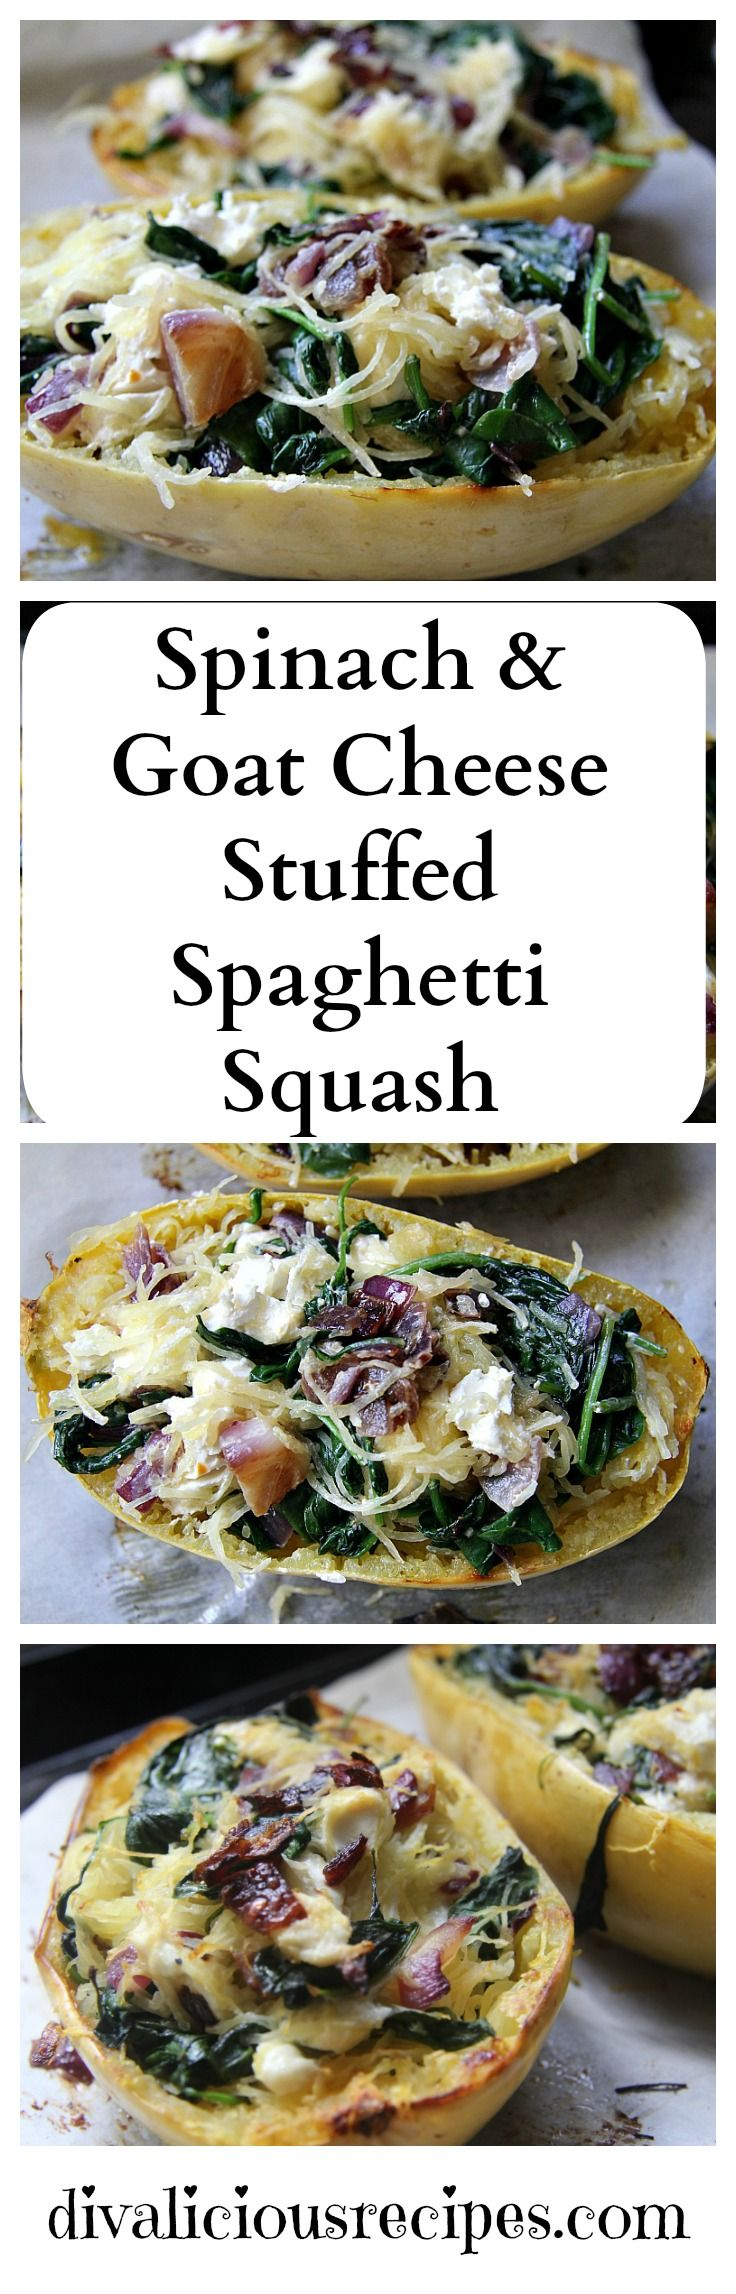 This stuffed spaghetti squash recipe is flavoured with spinach and goats cheese to make a hearty vegetarian dish. All the colours of autumn on your plate.